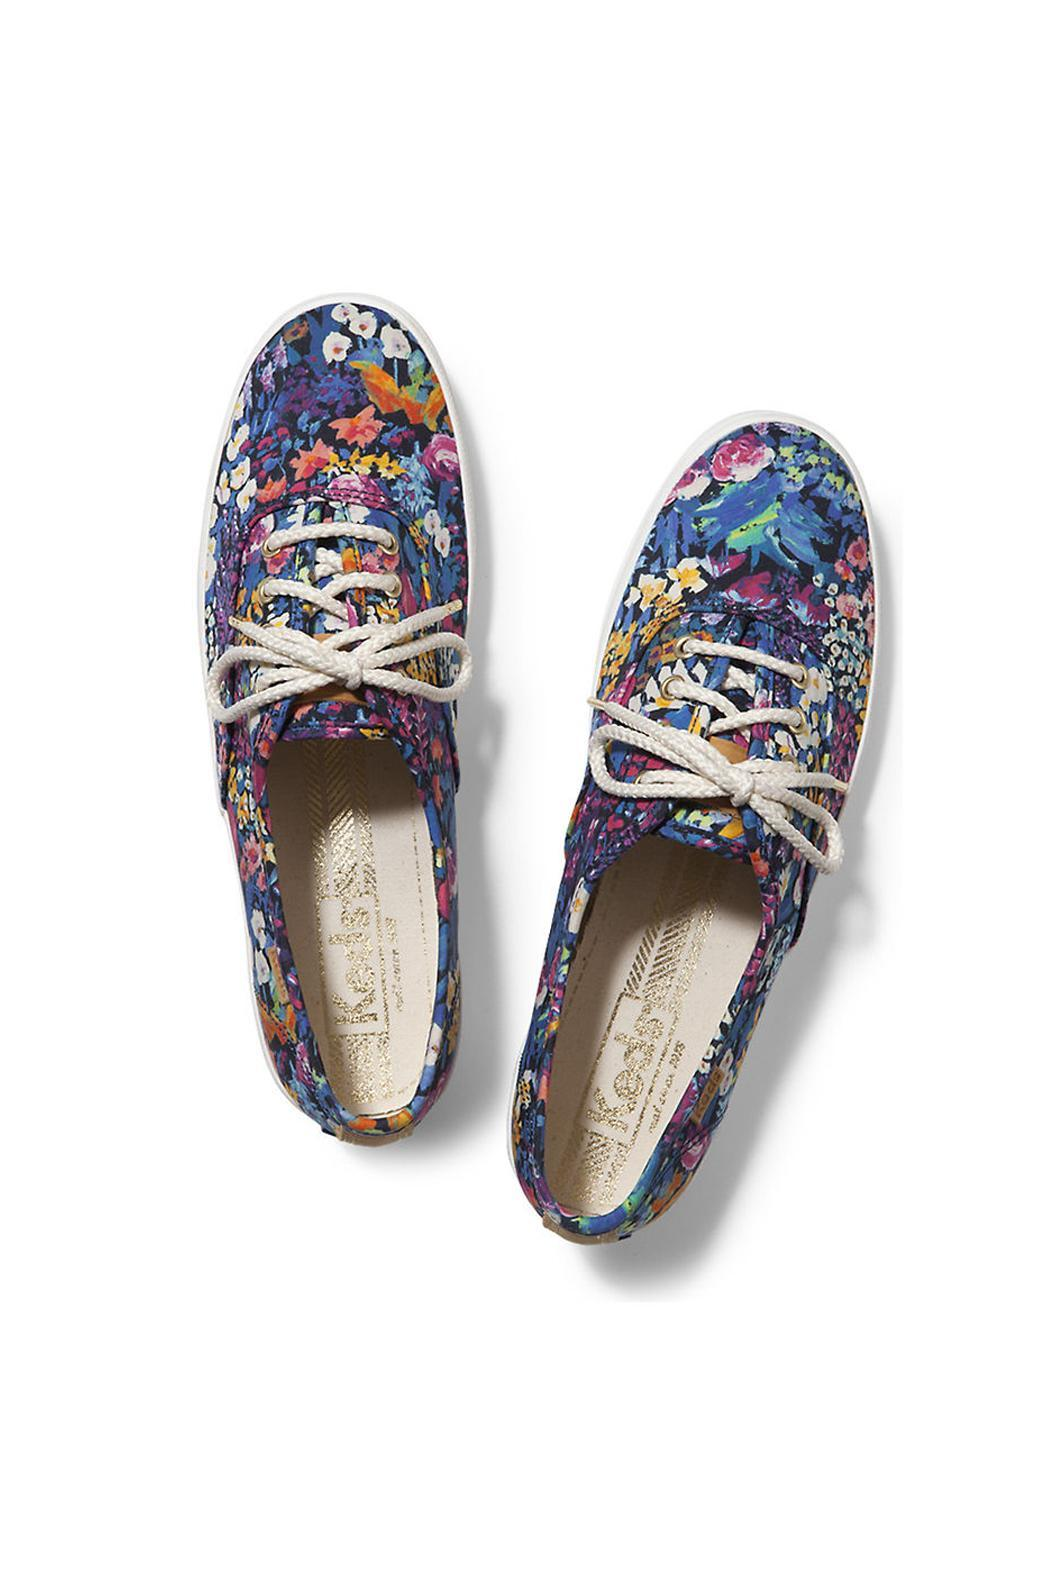 f8f6c95795c Keds Liberty Champion Floral from Canada by Starlet — Shoptiques